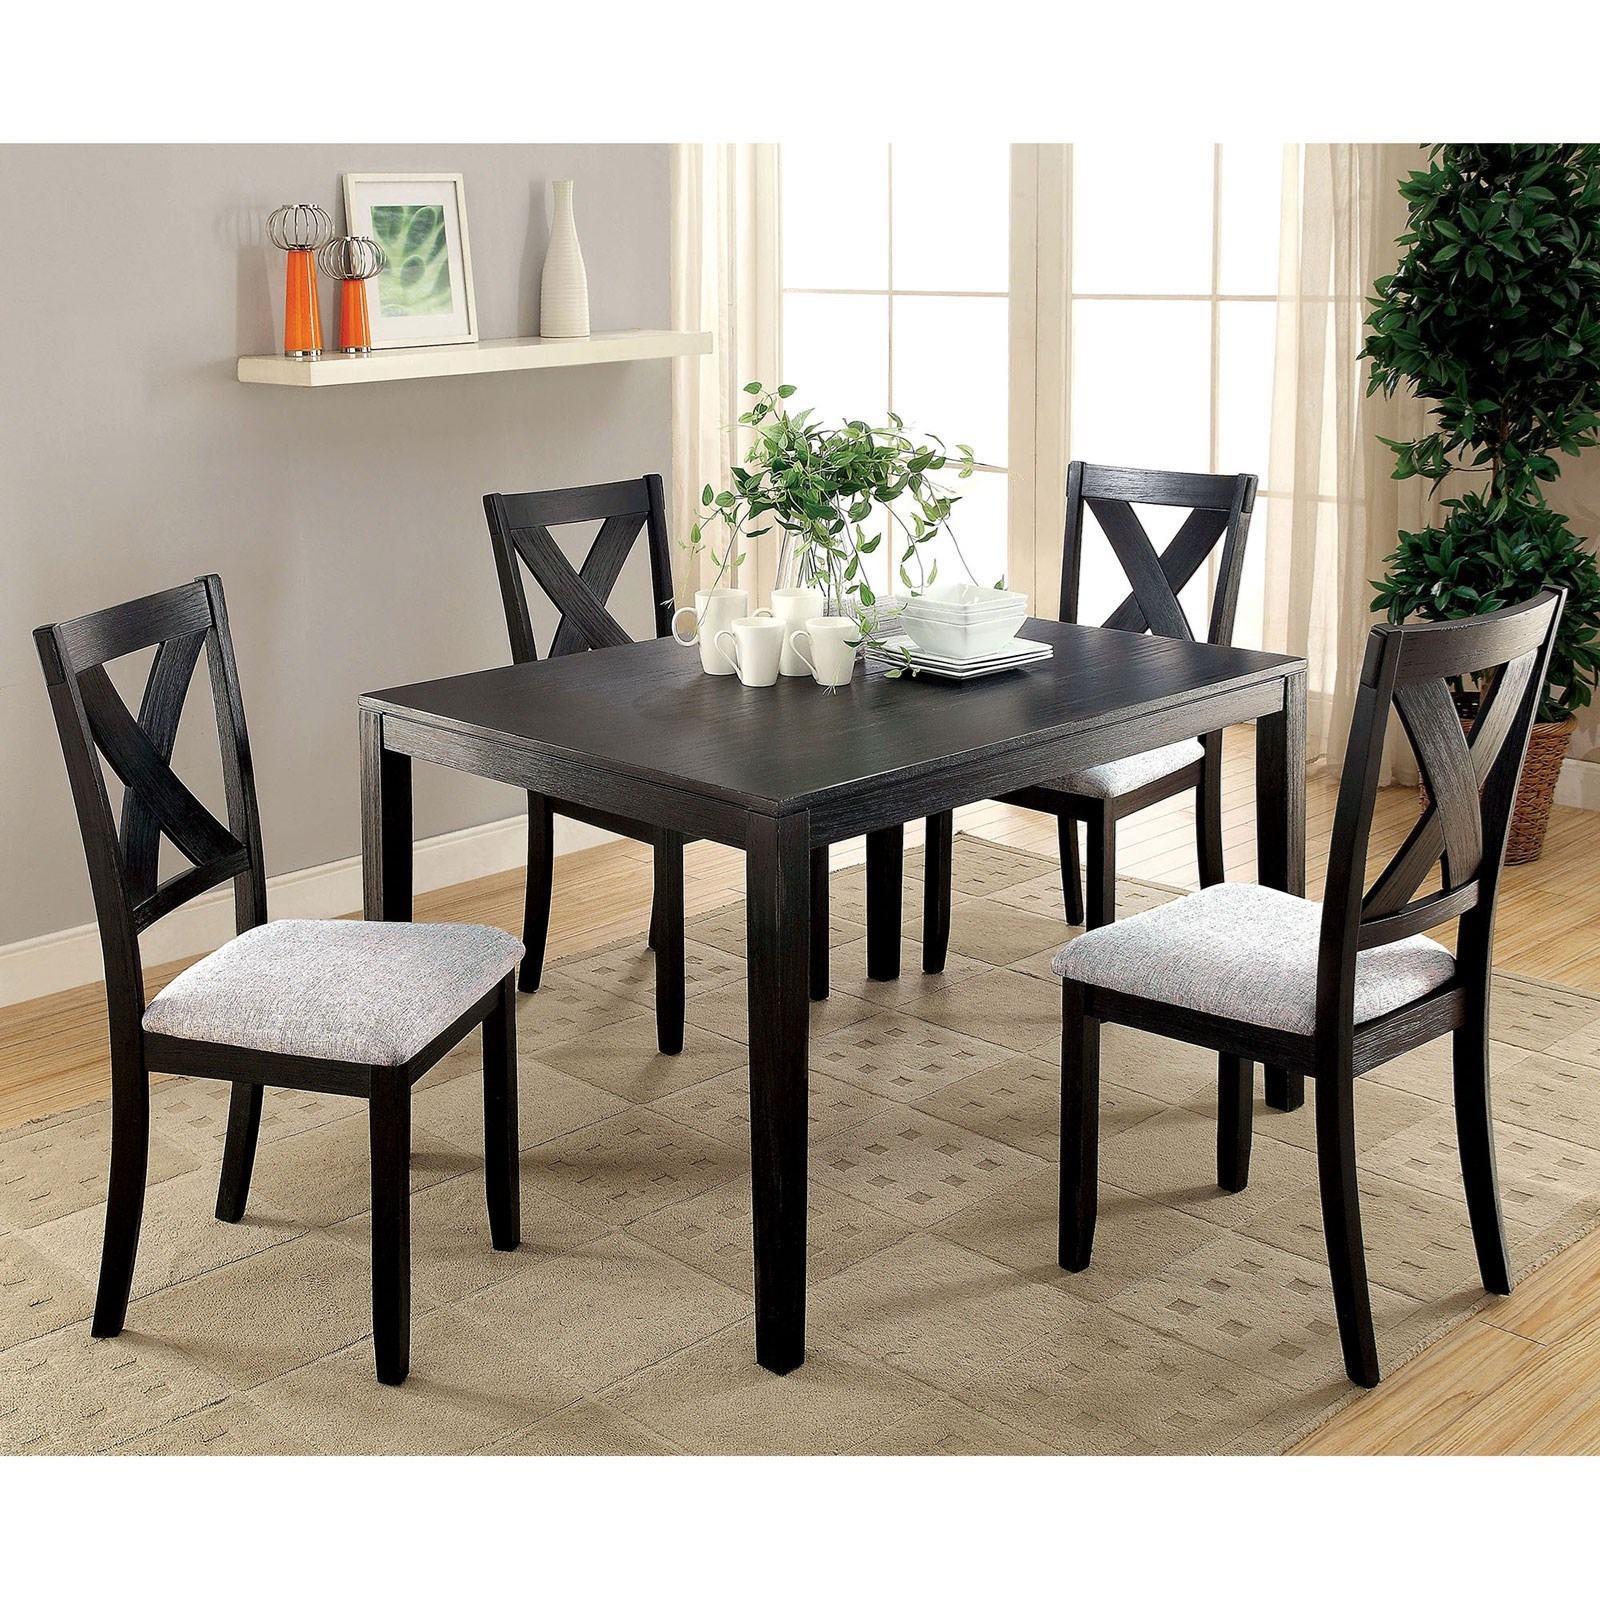 Rooms For Regarding Most Recent 5 Piece Dining Sets (#15 of 20)